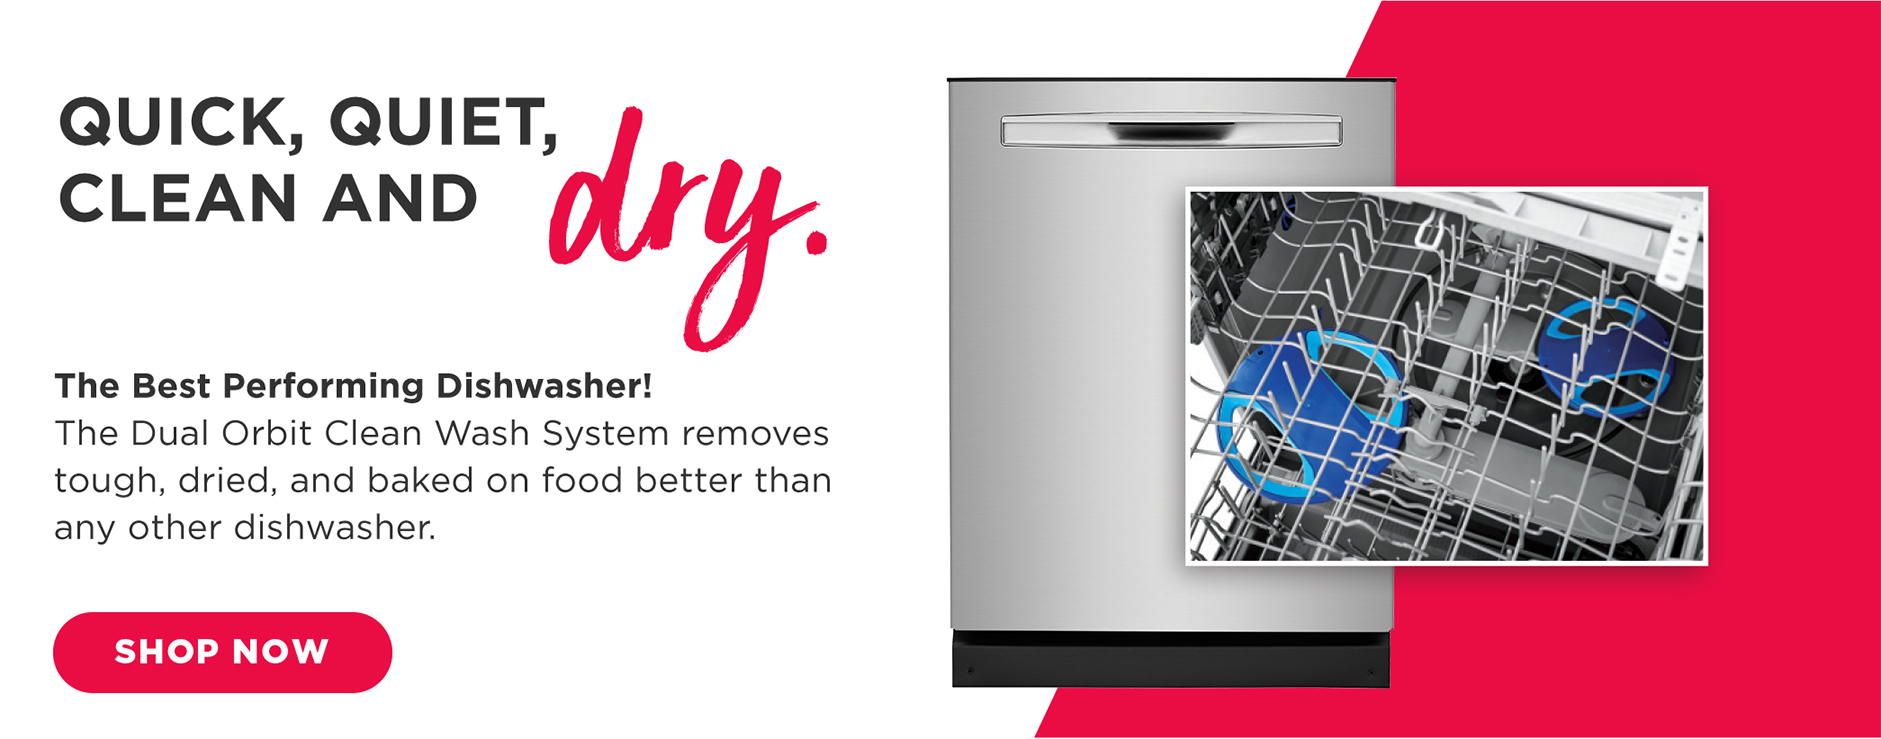 frigidaire dishwashers - quick, quiet, clean and dry